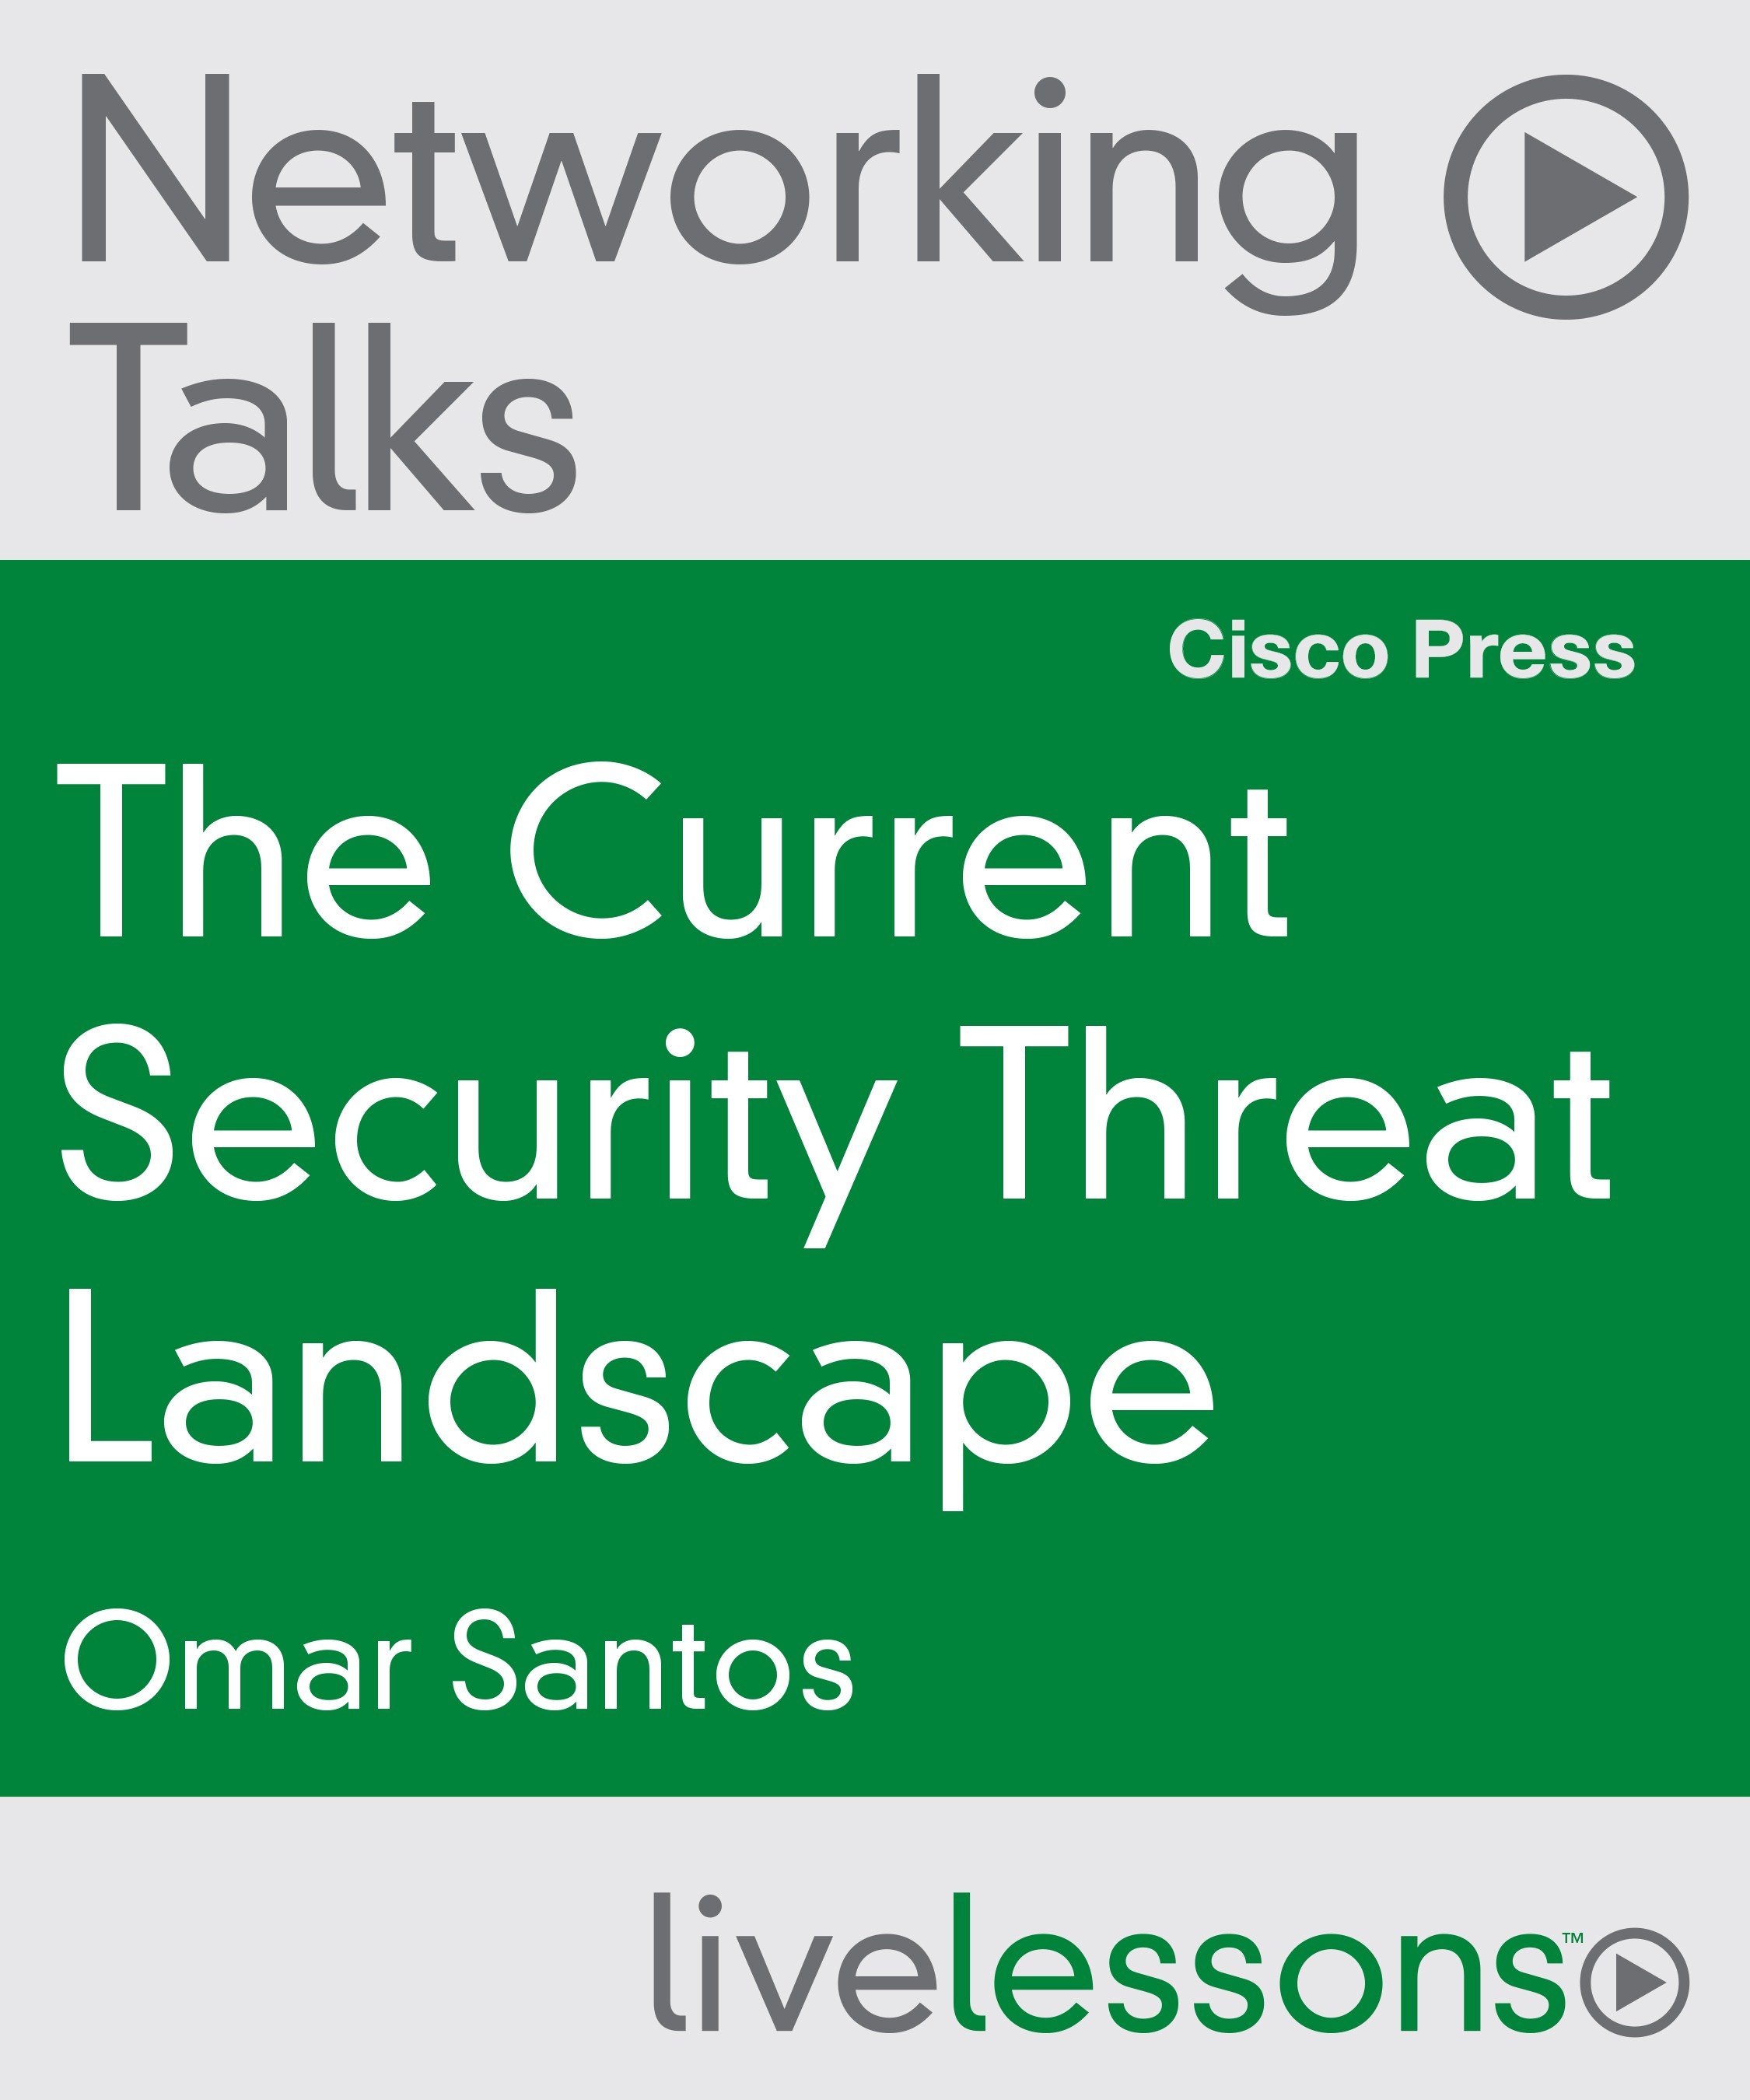 Current Security Threat Landscape Networking Talks LiveLessons, The